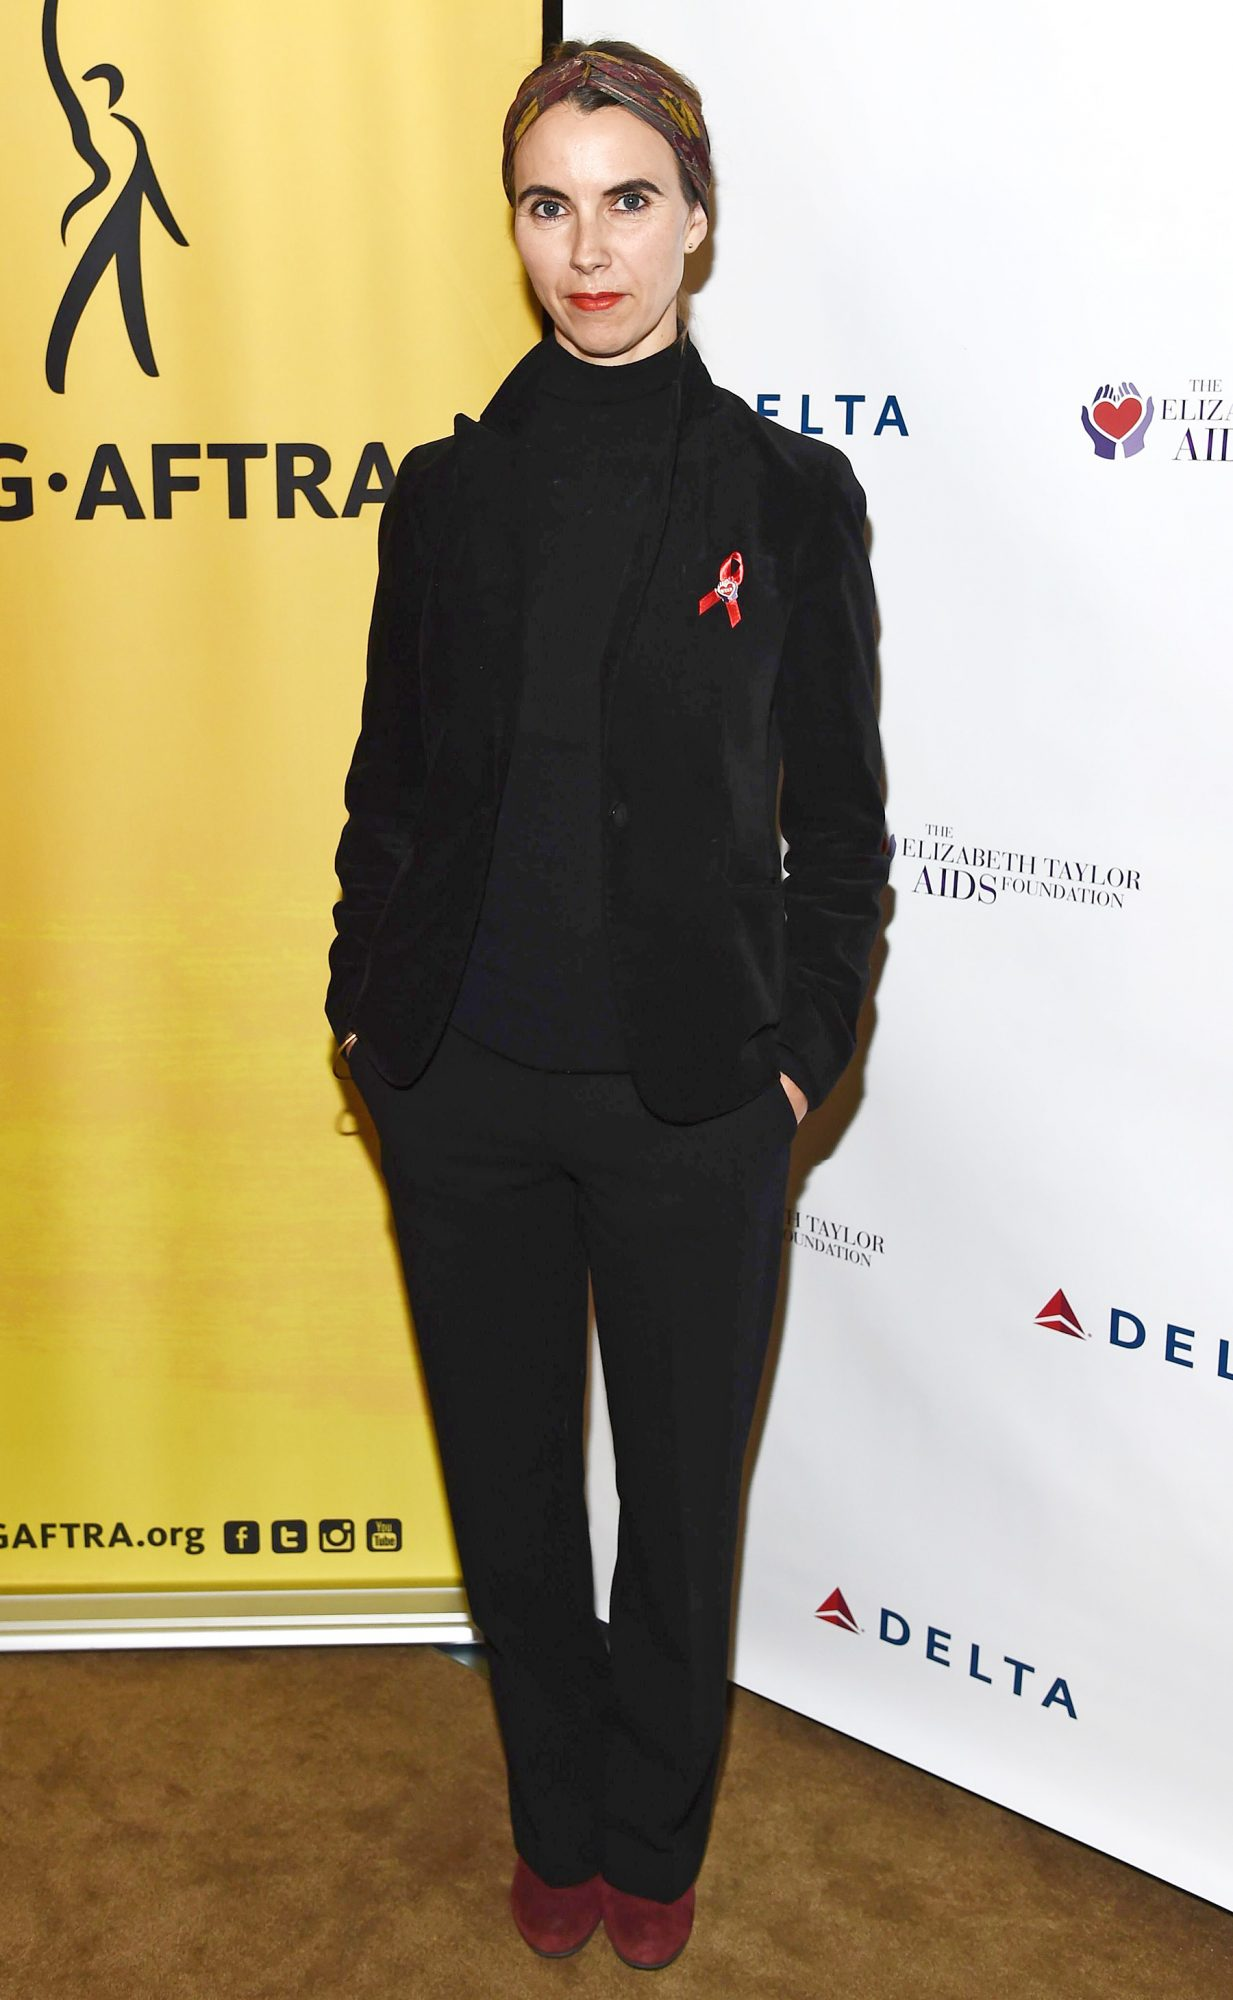 SAG-AFTRA and The Elizabeth Taylor AIDS Foundation's World AIDS Day Panel, Los Angeles, USA - 30 Nov 2016